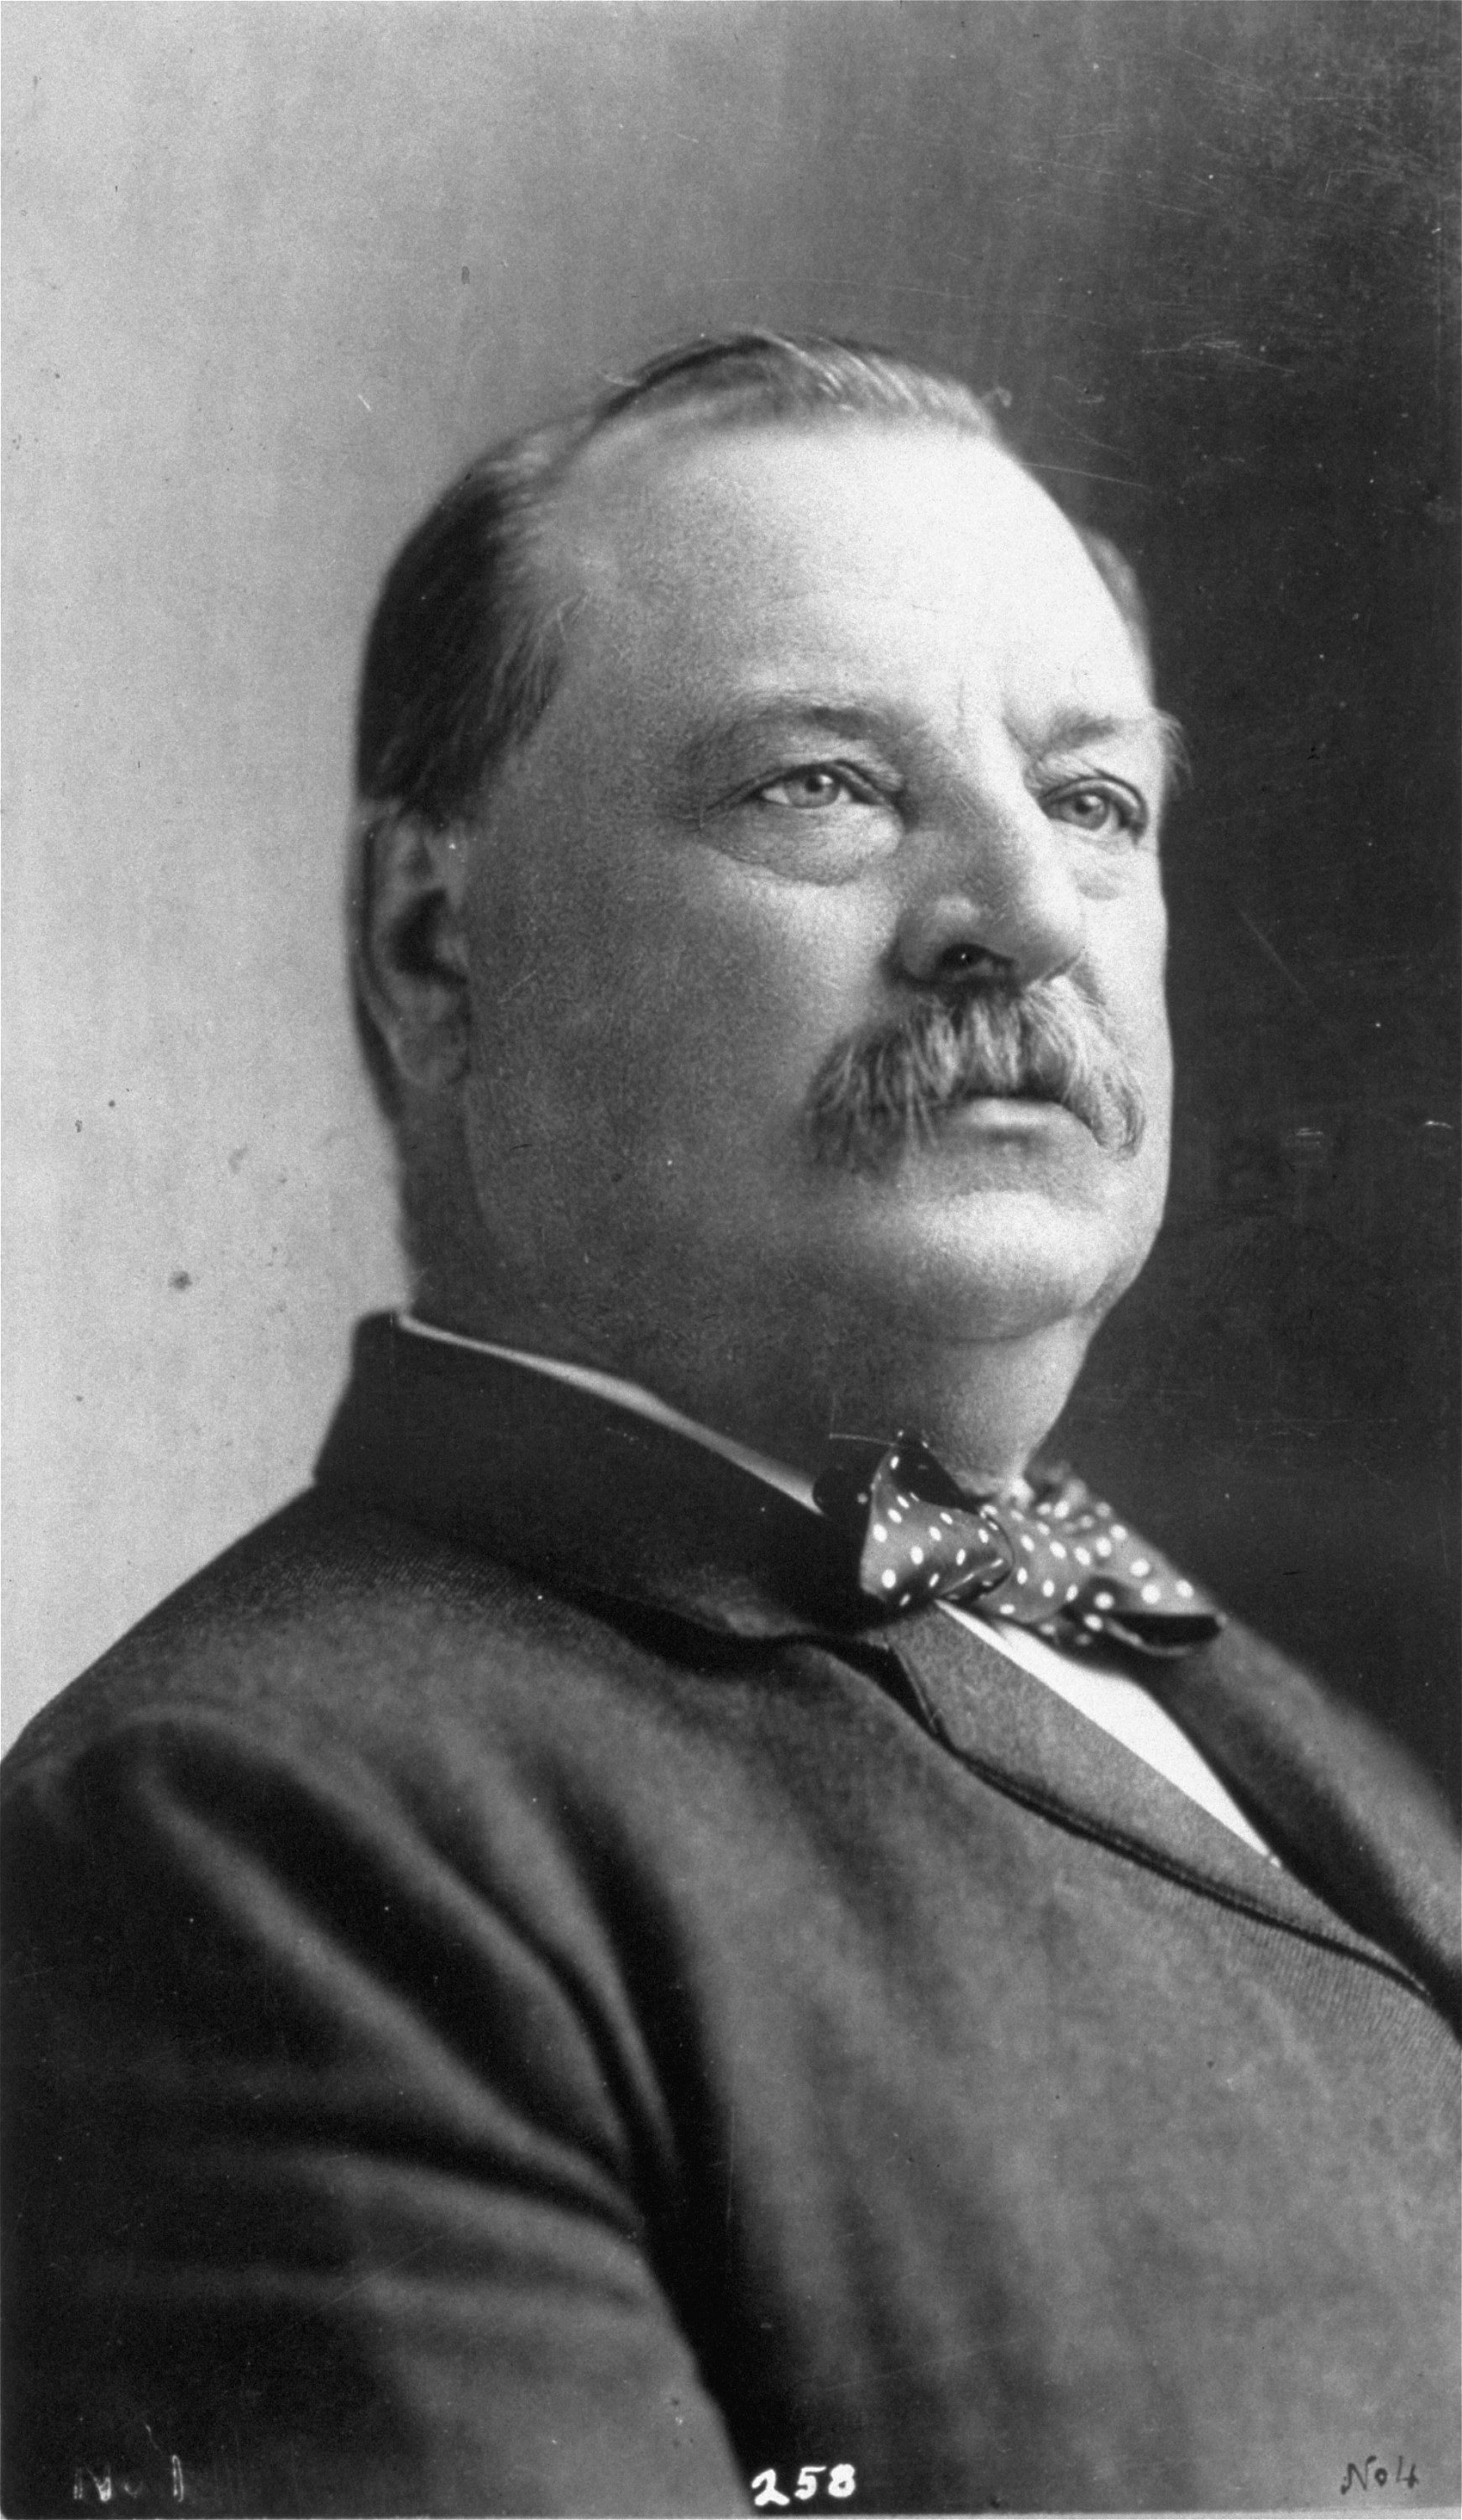 An undated portrait of Grover Cleveland, 22nd president of the United States.